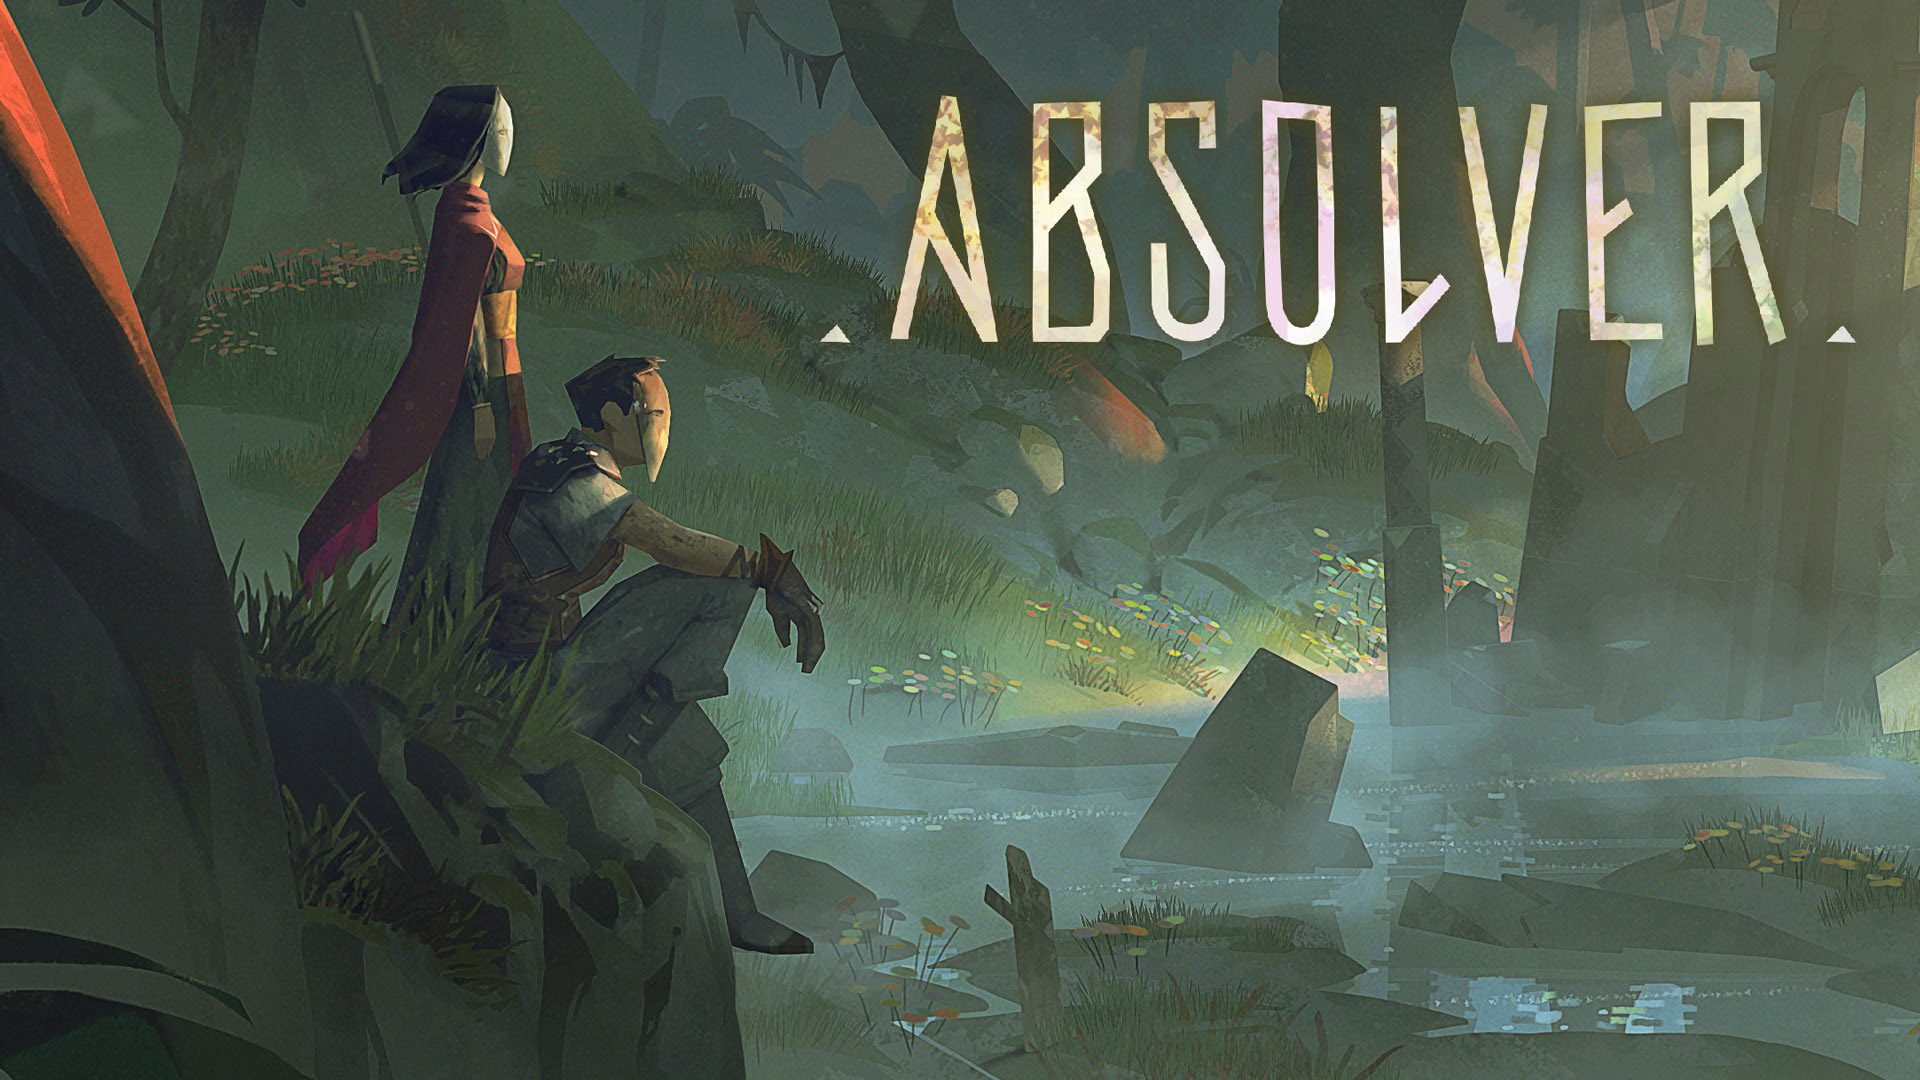 Free Absolver Wallpaper in 1920x1080